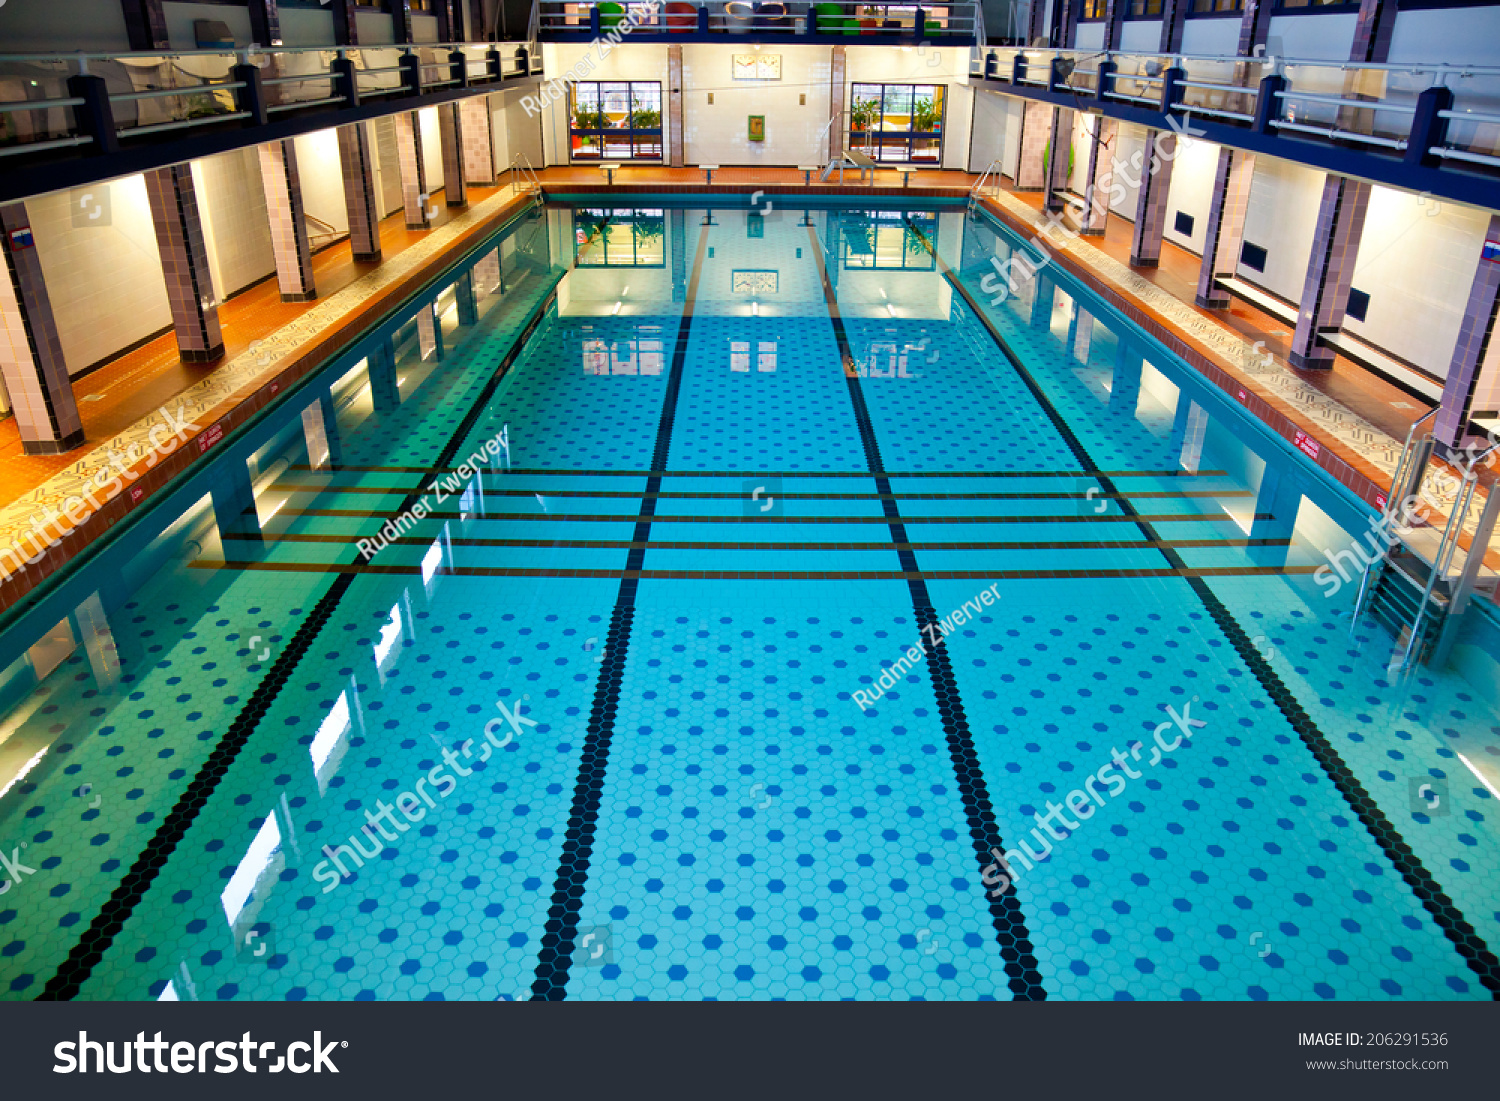 Historical Large Swimming Pool Hall Suitable For Competition Events Stock Photo 206291536